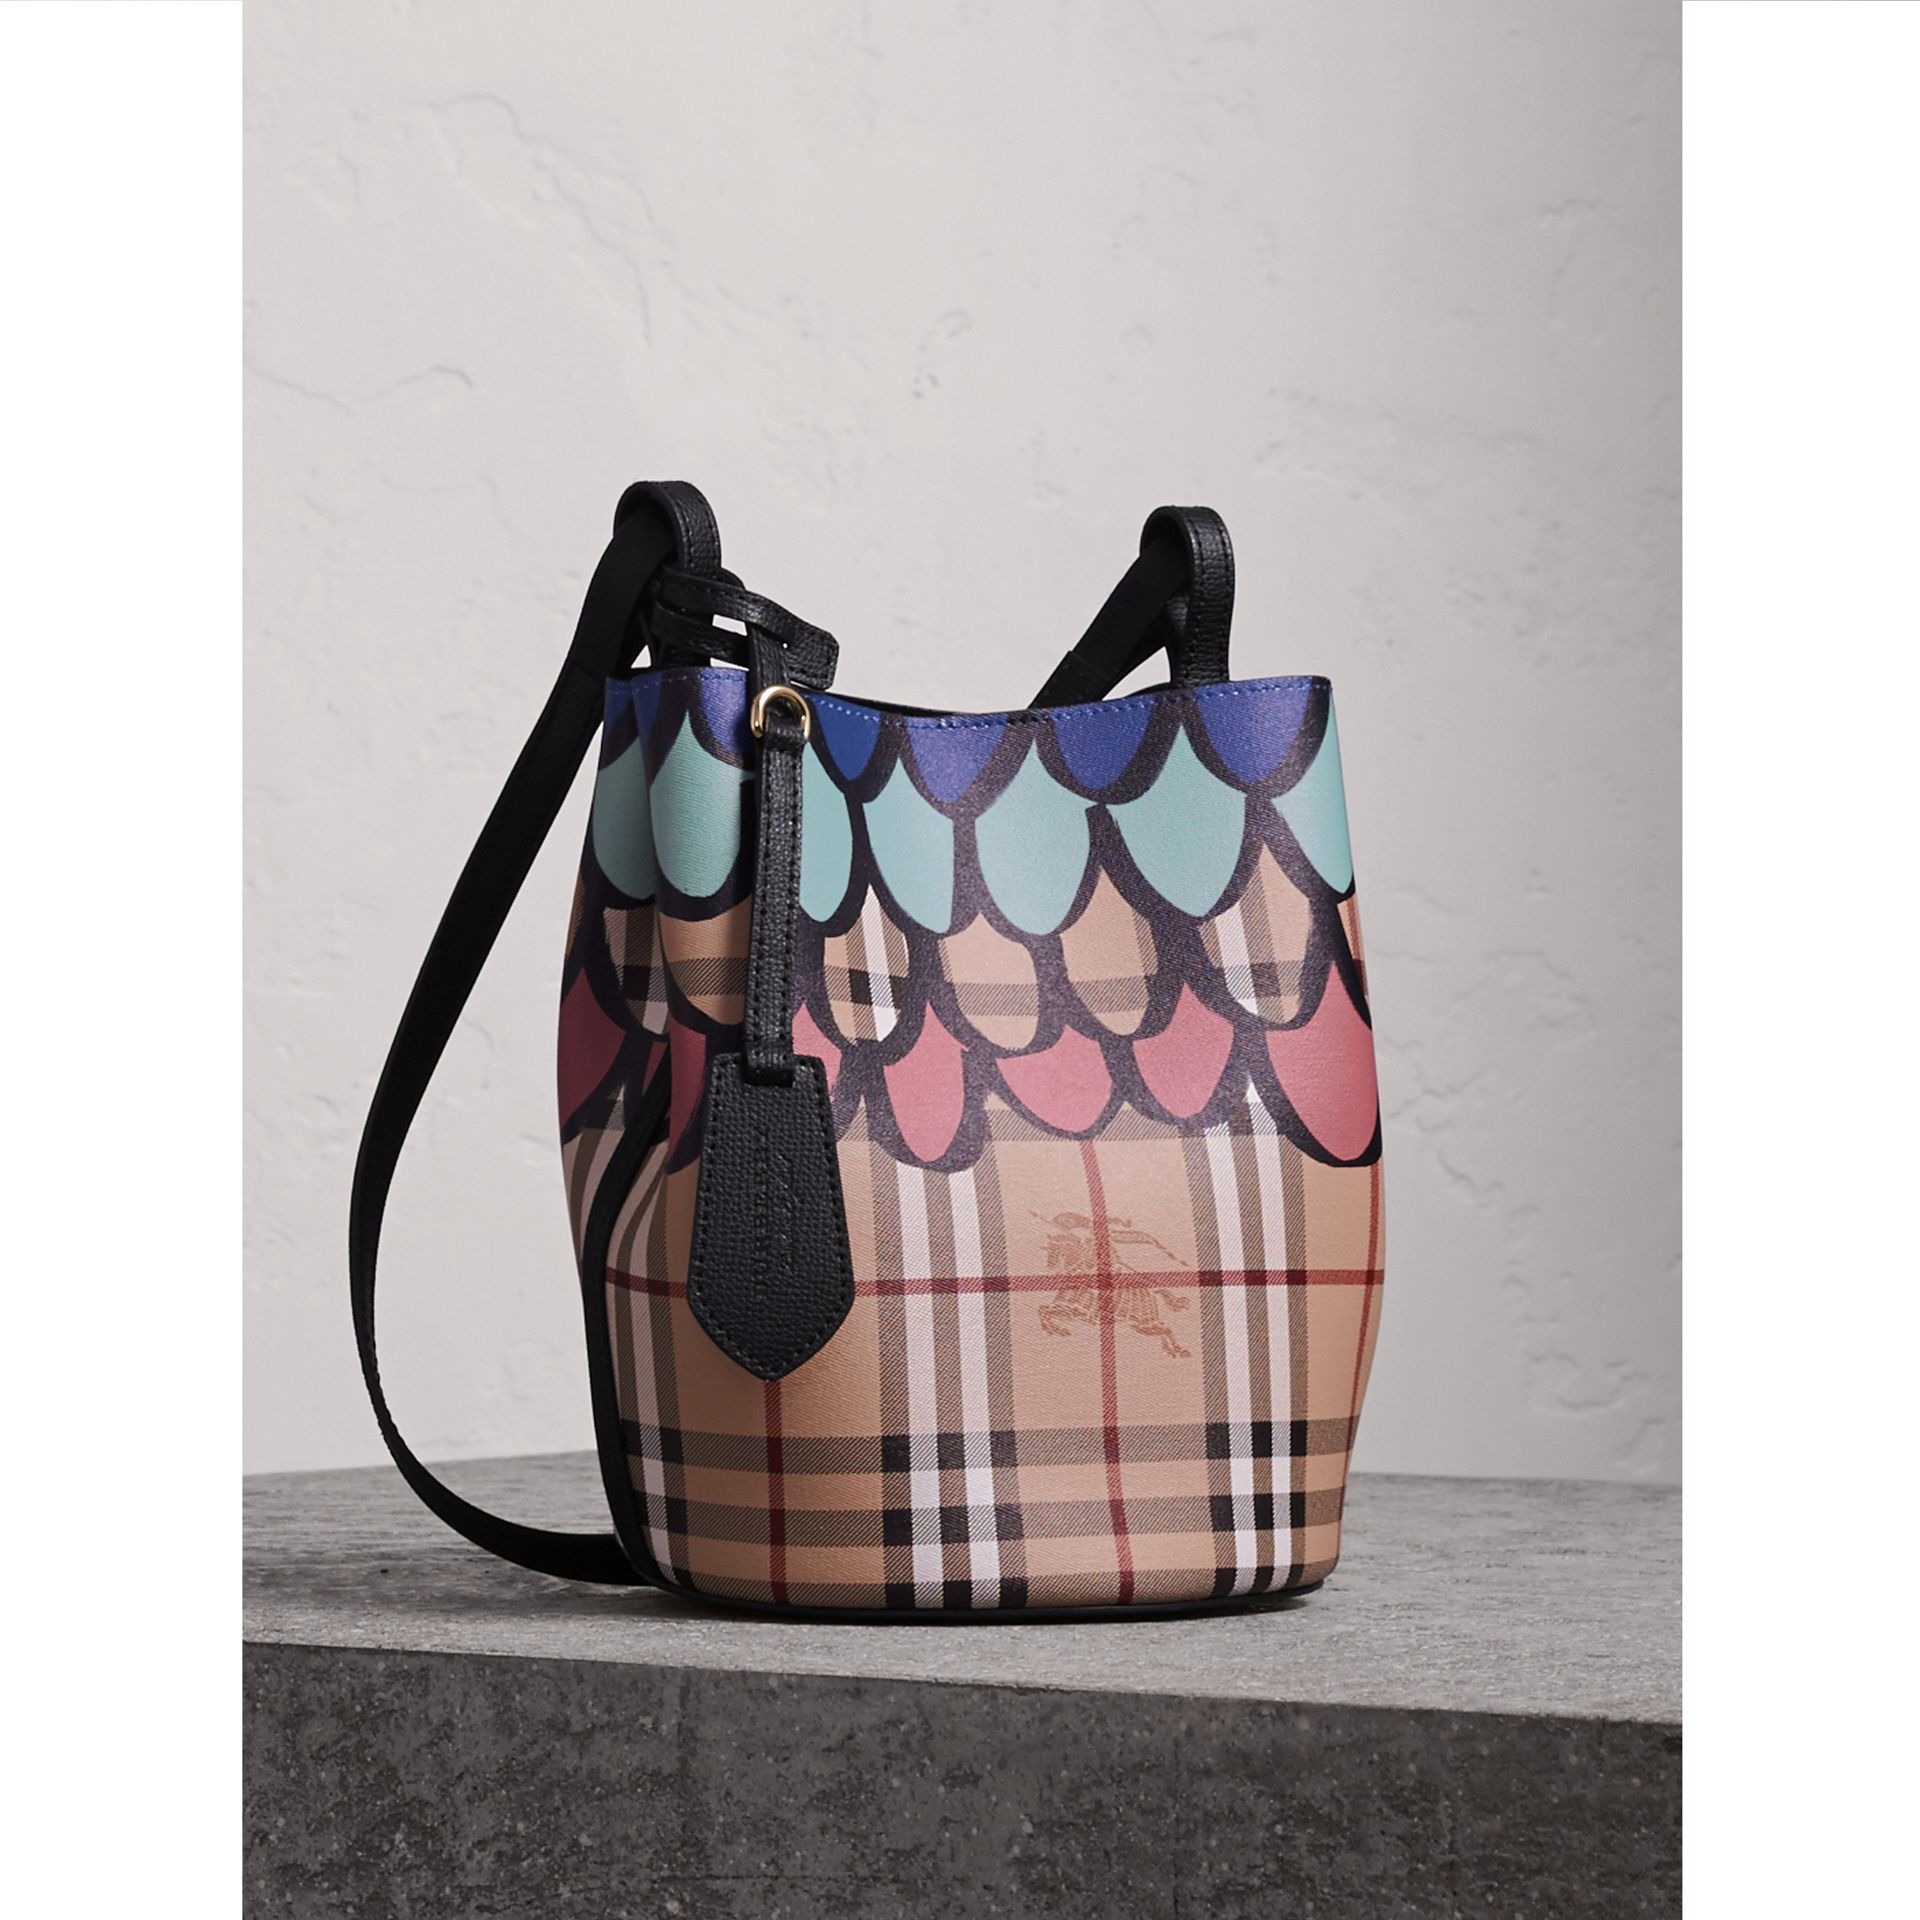 Trompe L'oeil Print Crossbody Bucket Bag in Black - Women | Burberry - gallery image 1